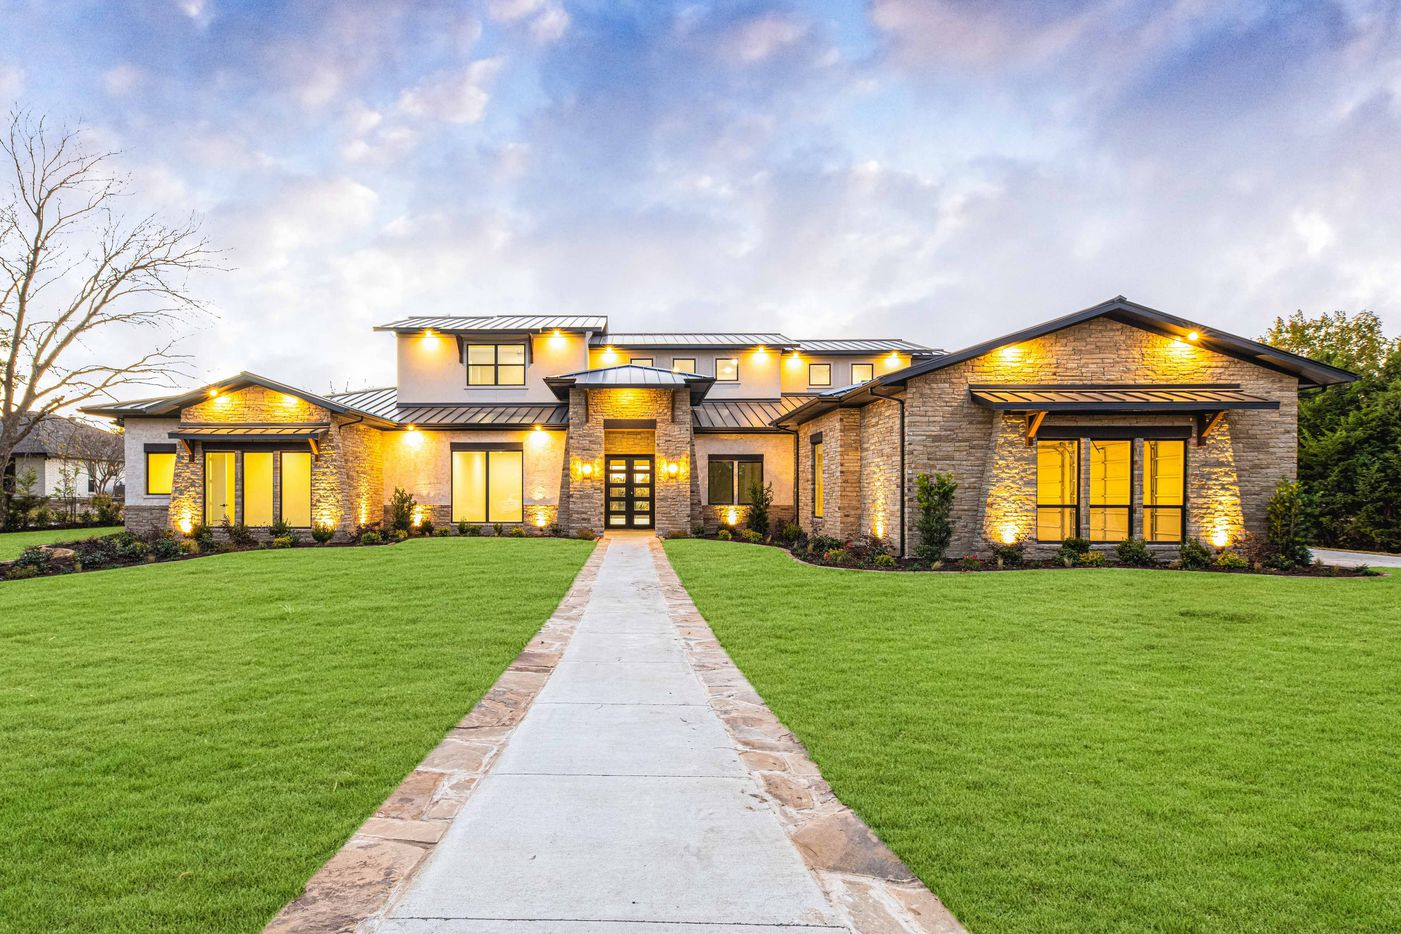 A look at the exterior of 1420 Hubbard Drive in Heath, TX.